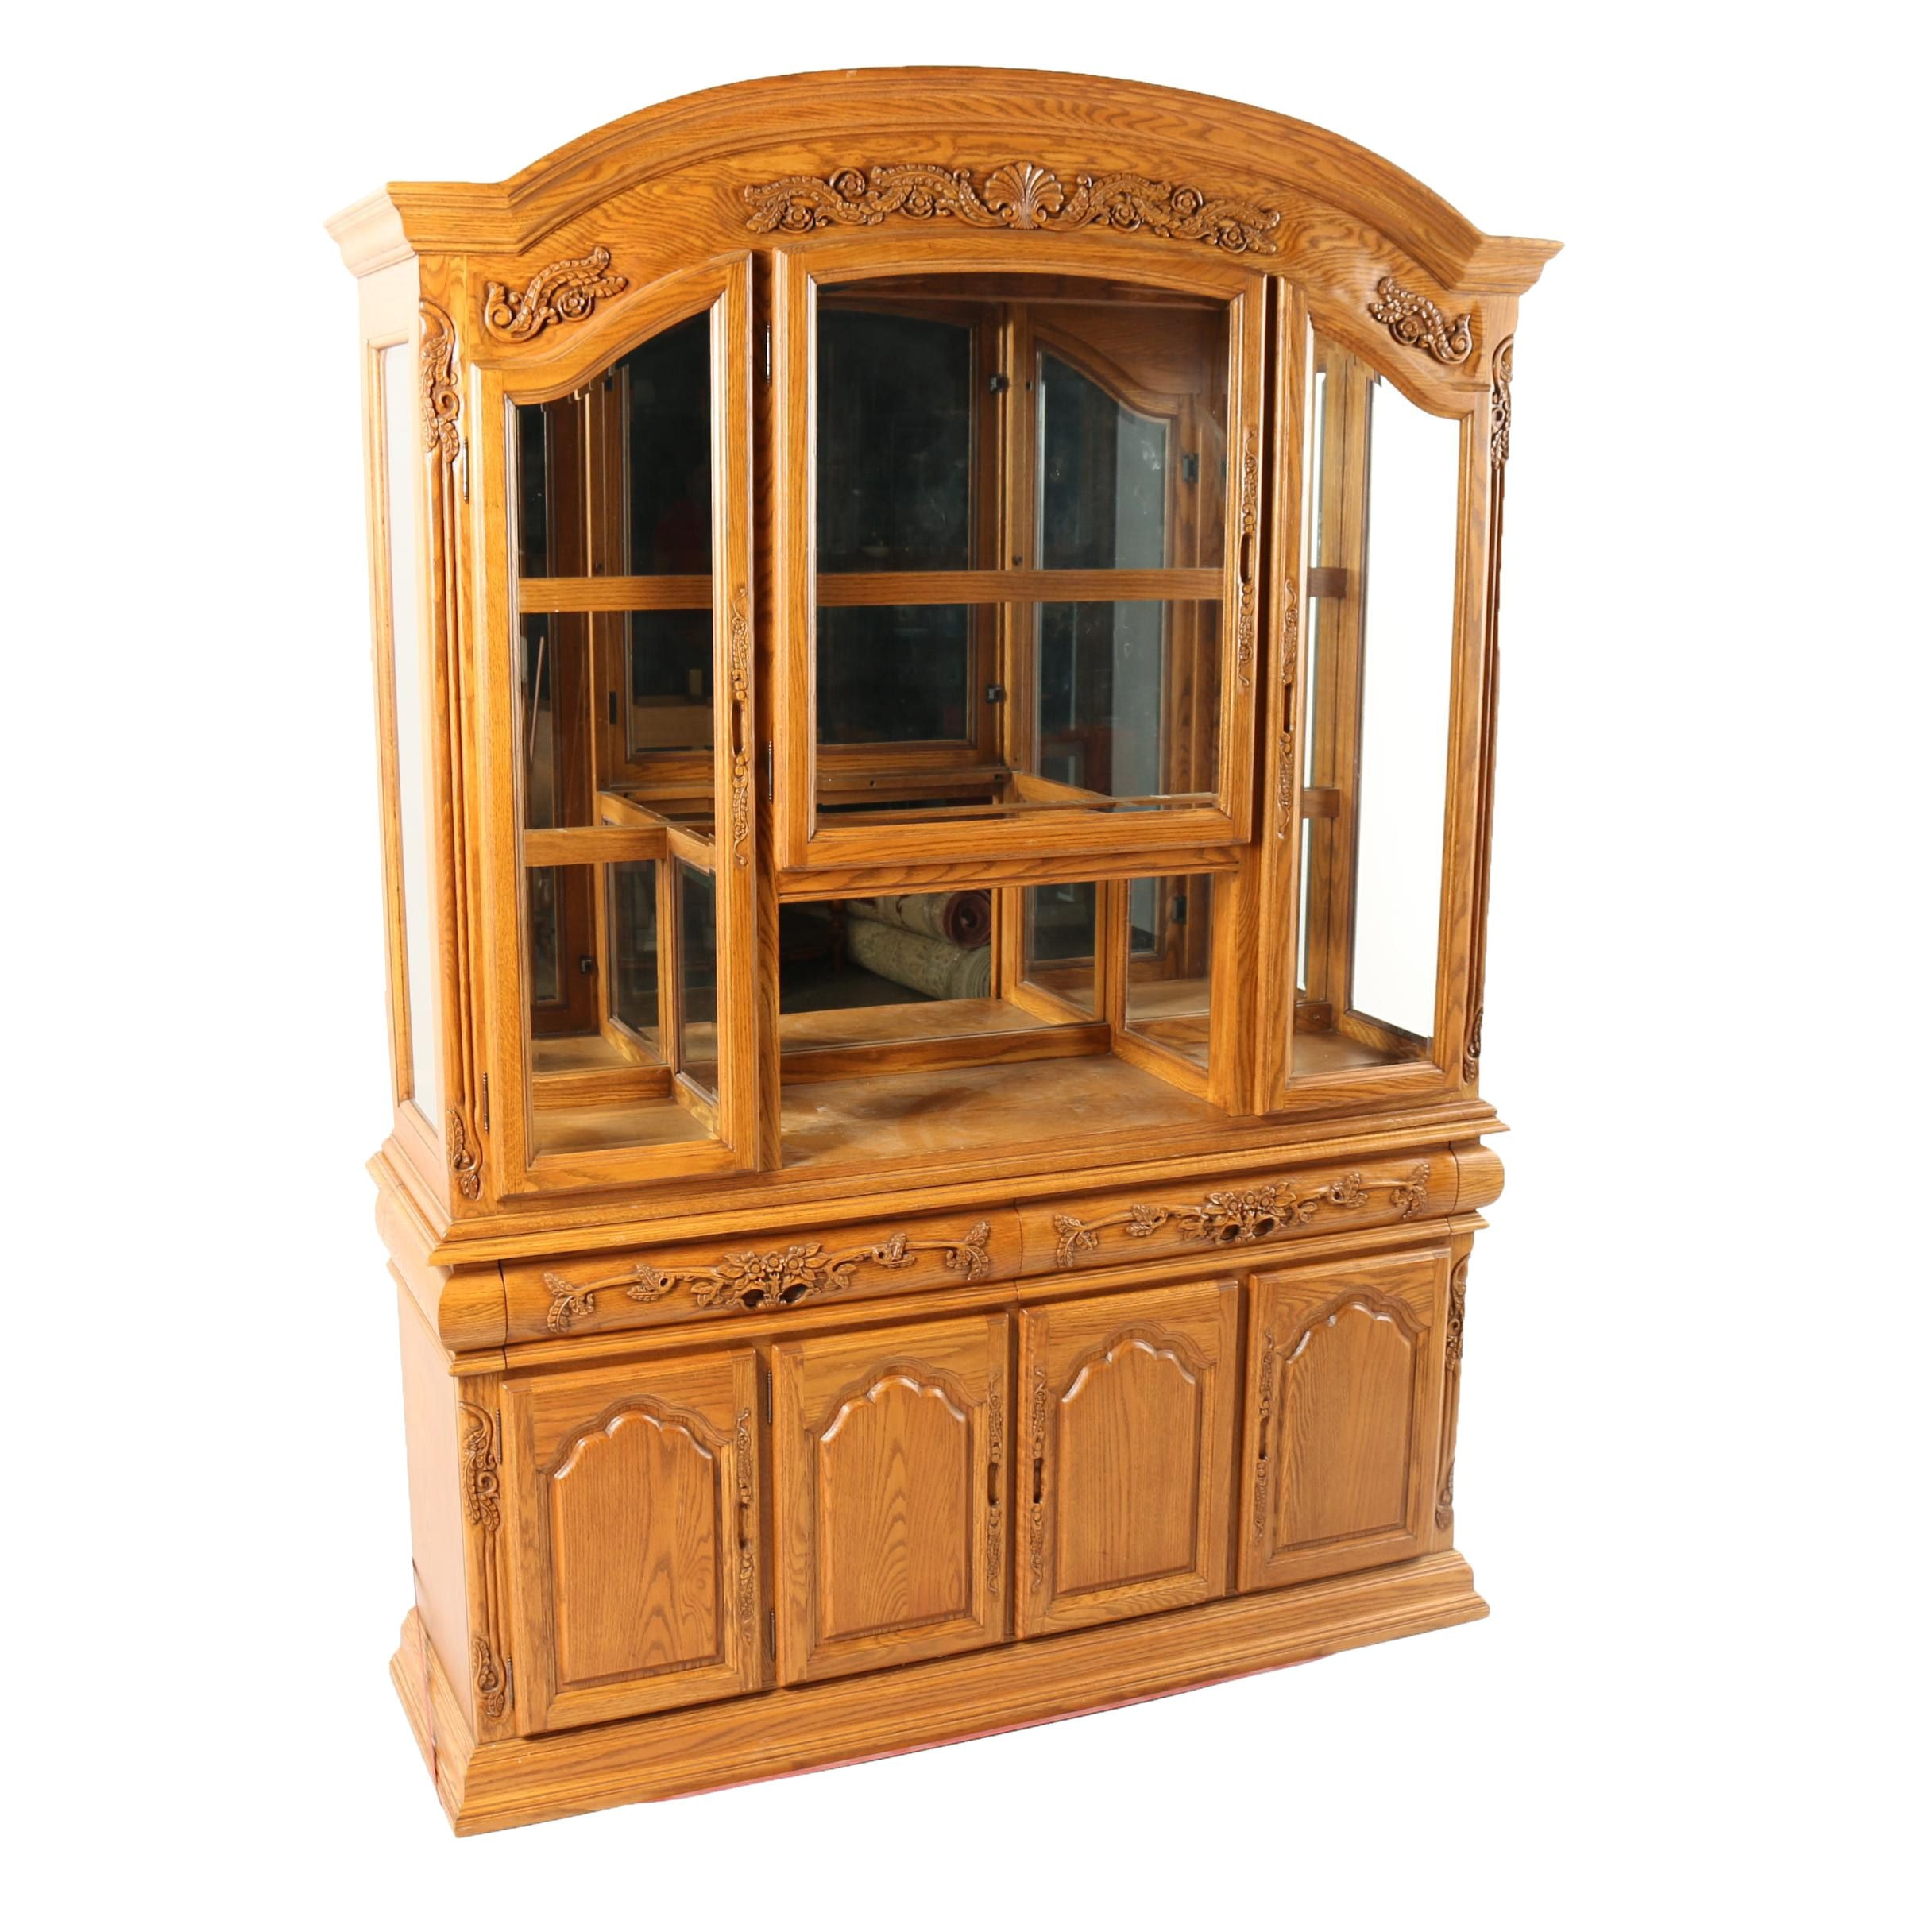 Queen Anne Style Oak Illuminated China Cabinet